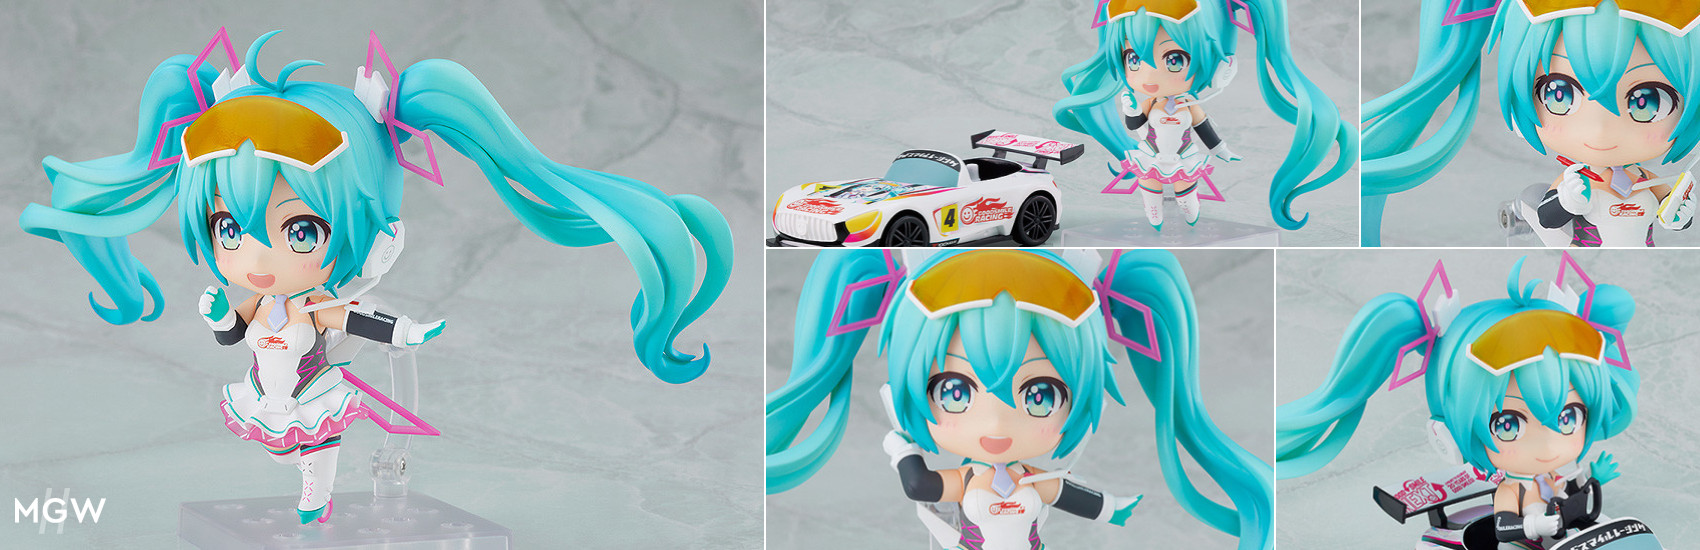 Nendoroid Racing Miku 2021 Ver. with illustration by Morikura En MyGrailWatch Anime Figure Guide